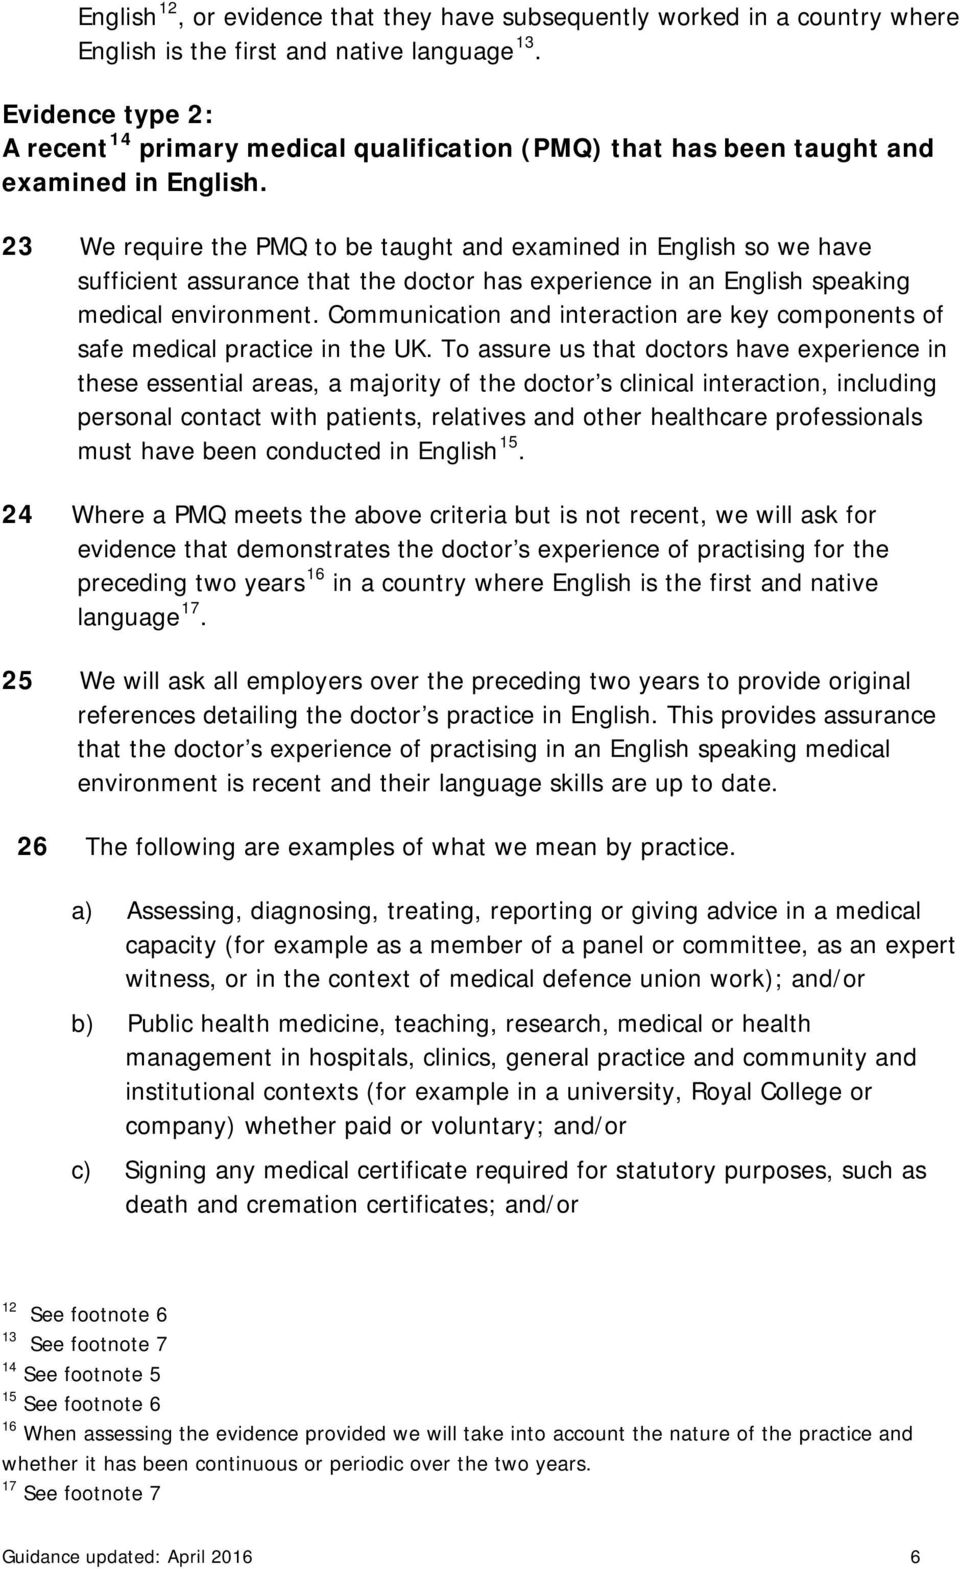 23 We require the PMQ to be taught and examined in English so we have sufficient assurance that the doctor has experience in an English speaking medical environment.